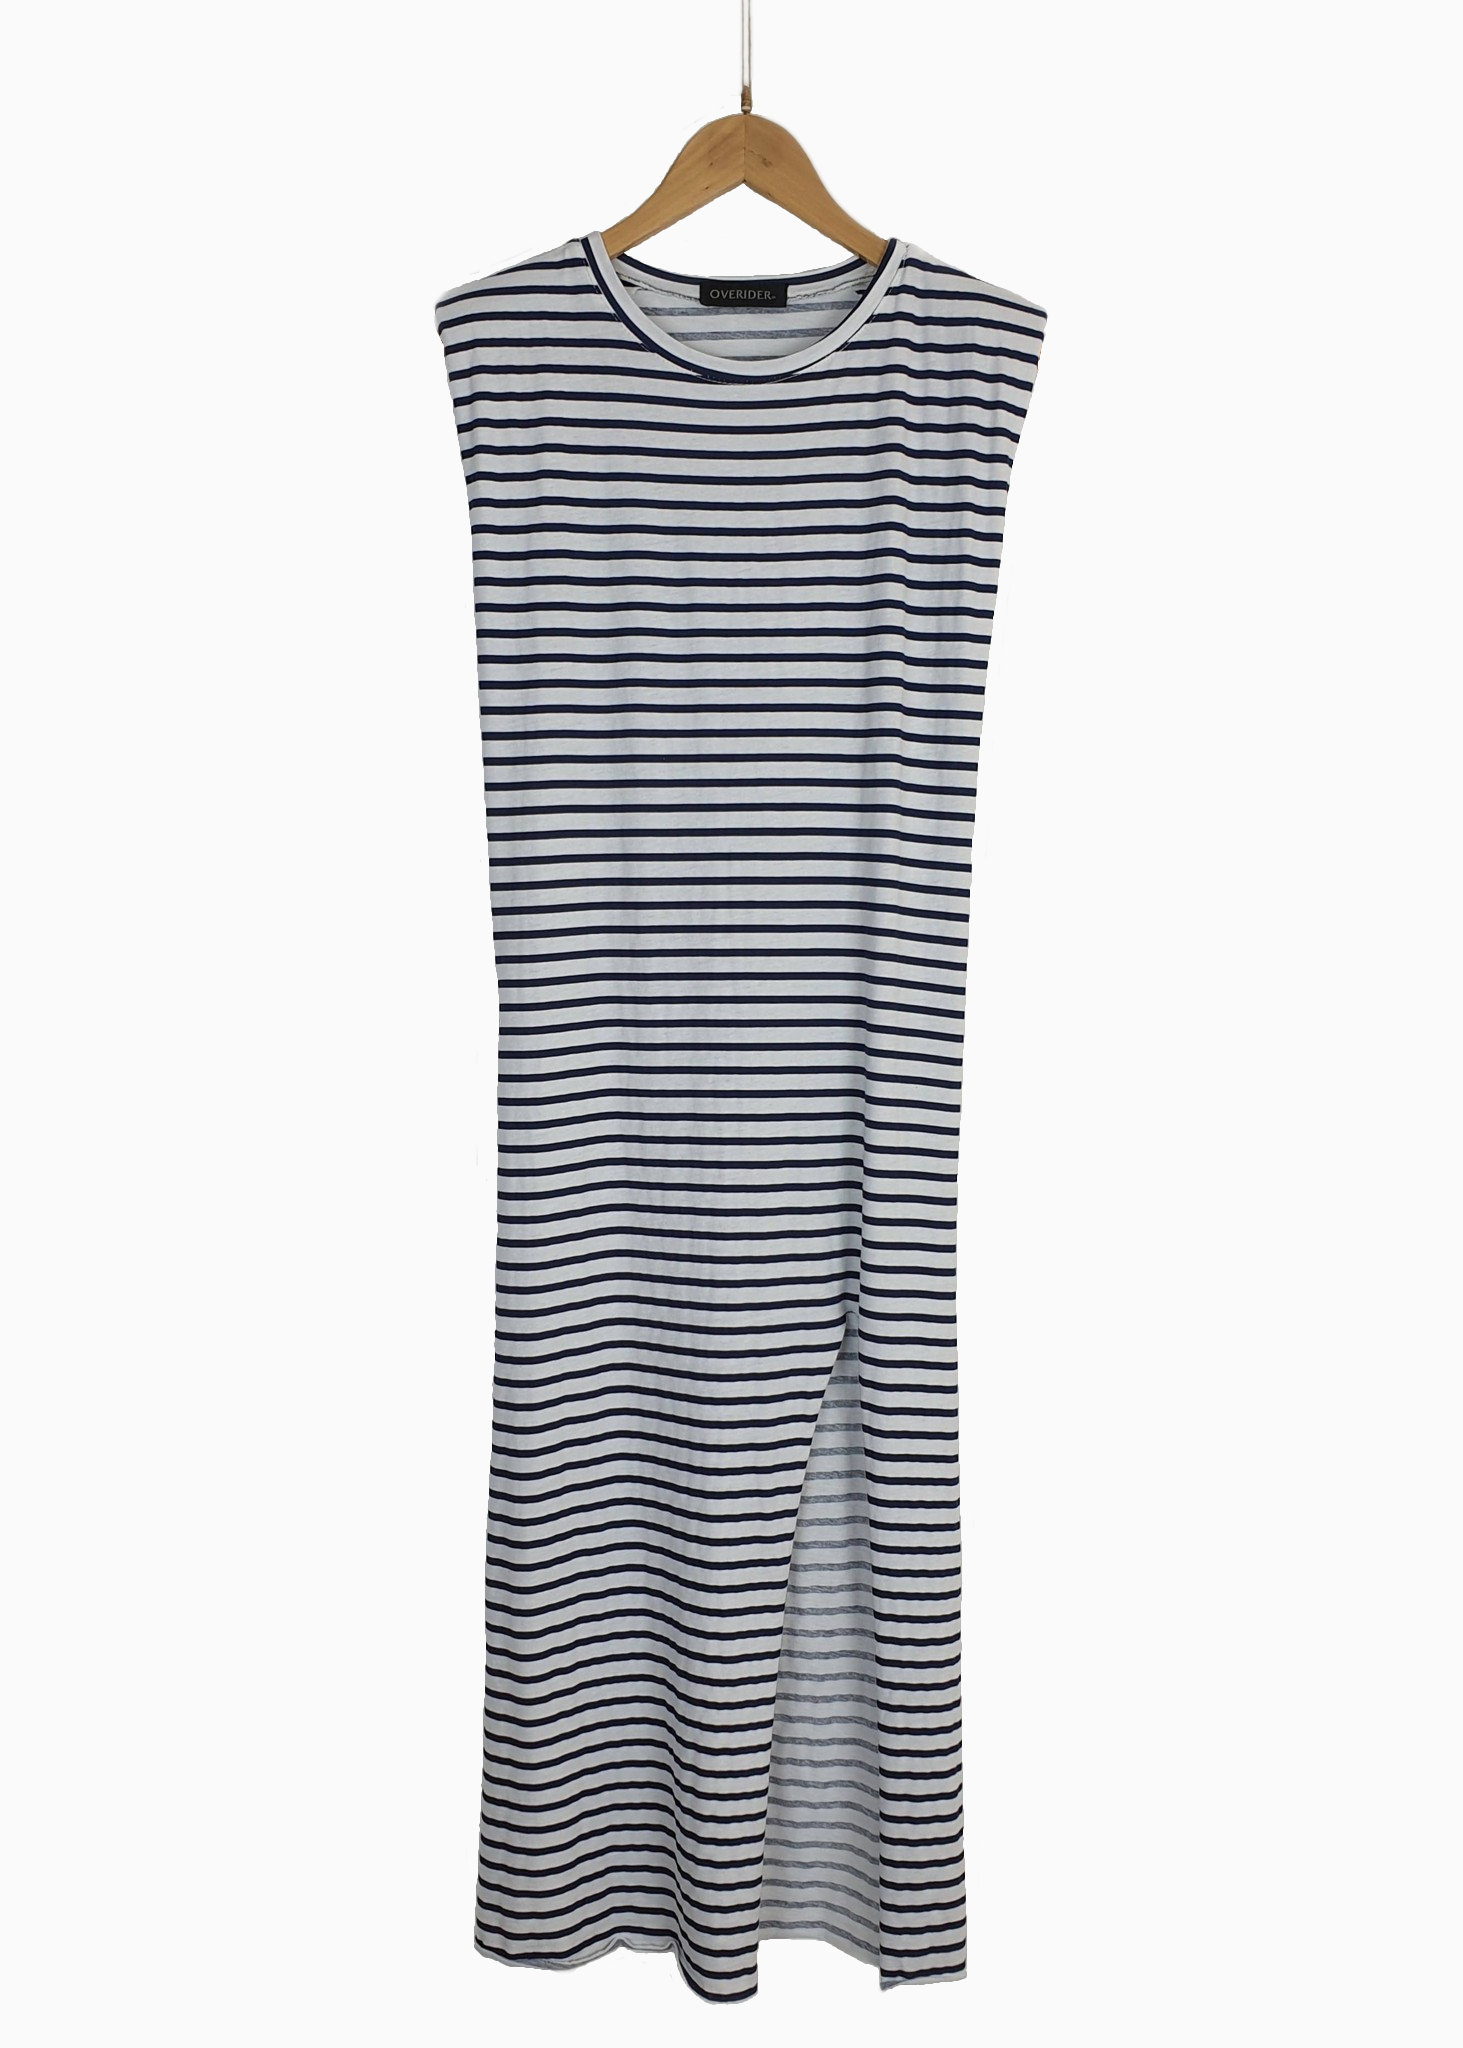 LYDIE - Long Striped Dress - Navy